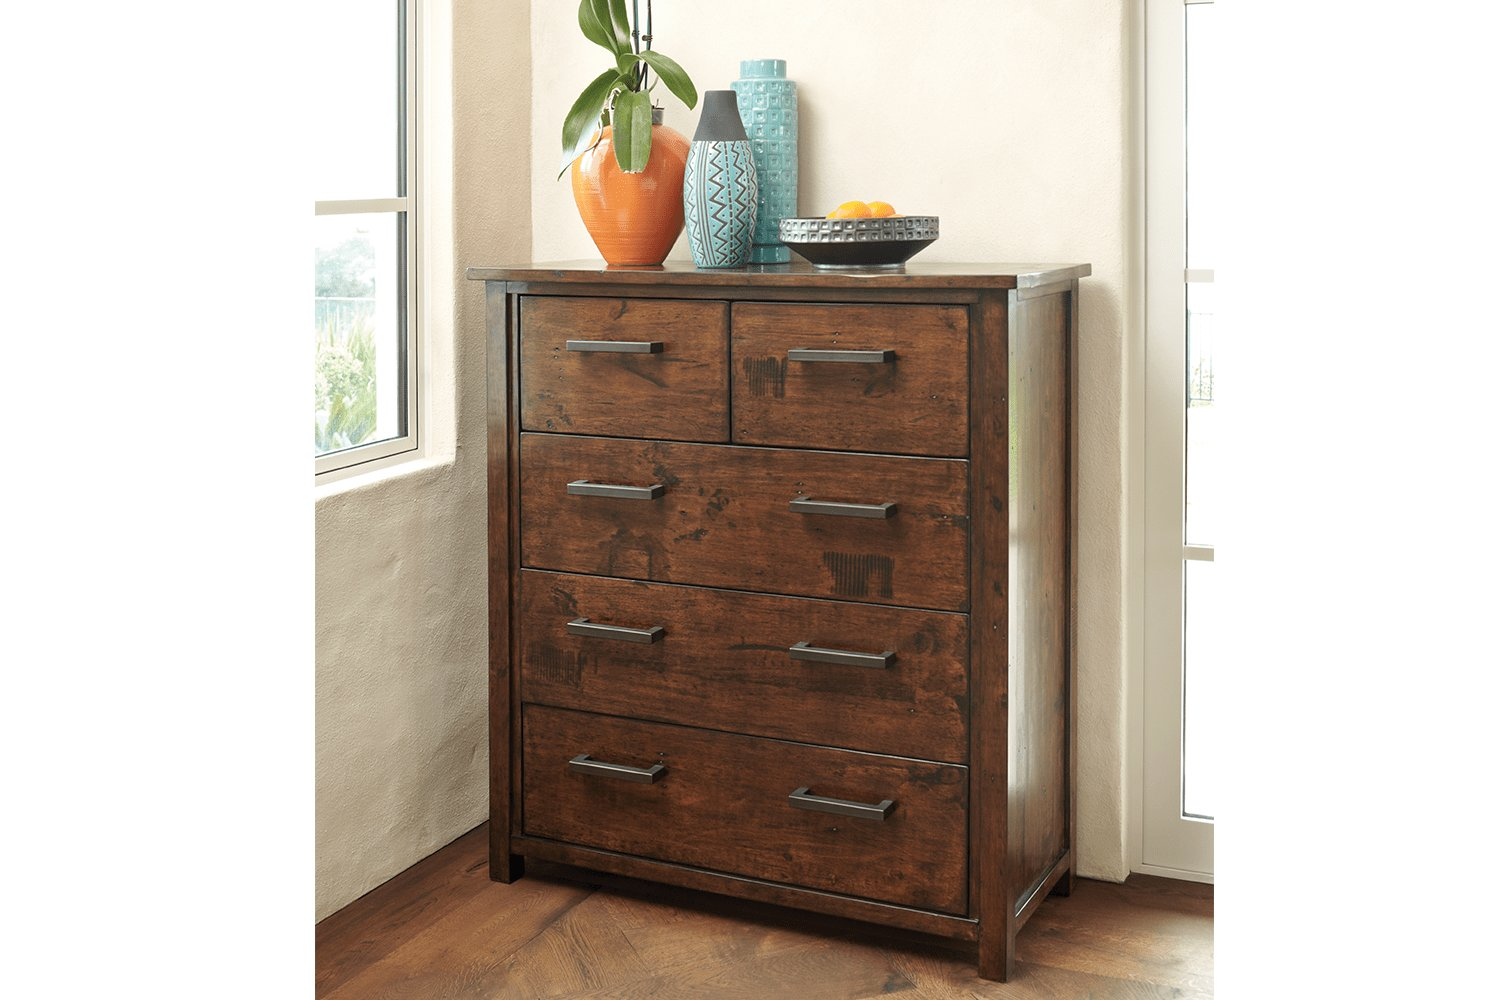 Best Farmhouse 5 Drawer Tallboy By John Young Furniture Harvey Norman New Zealand With Pictures